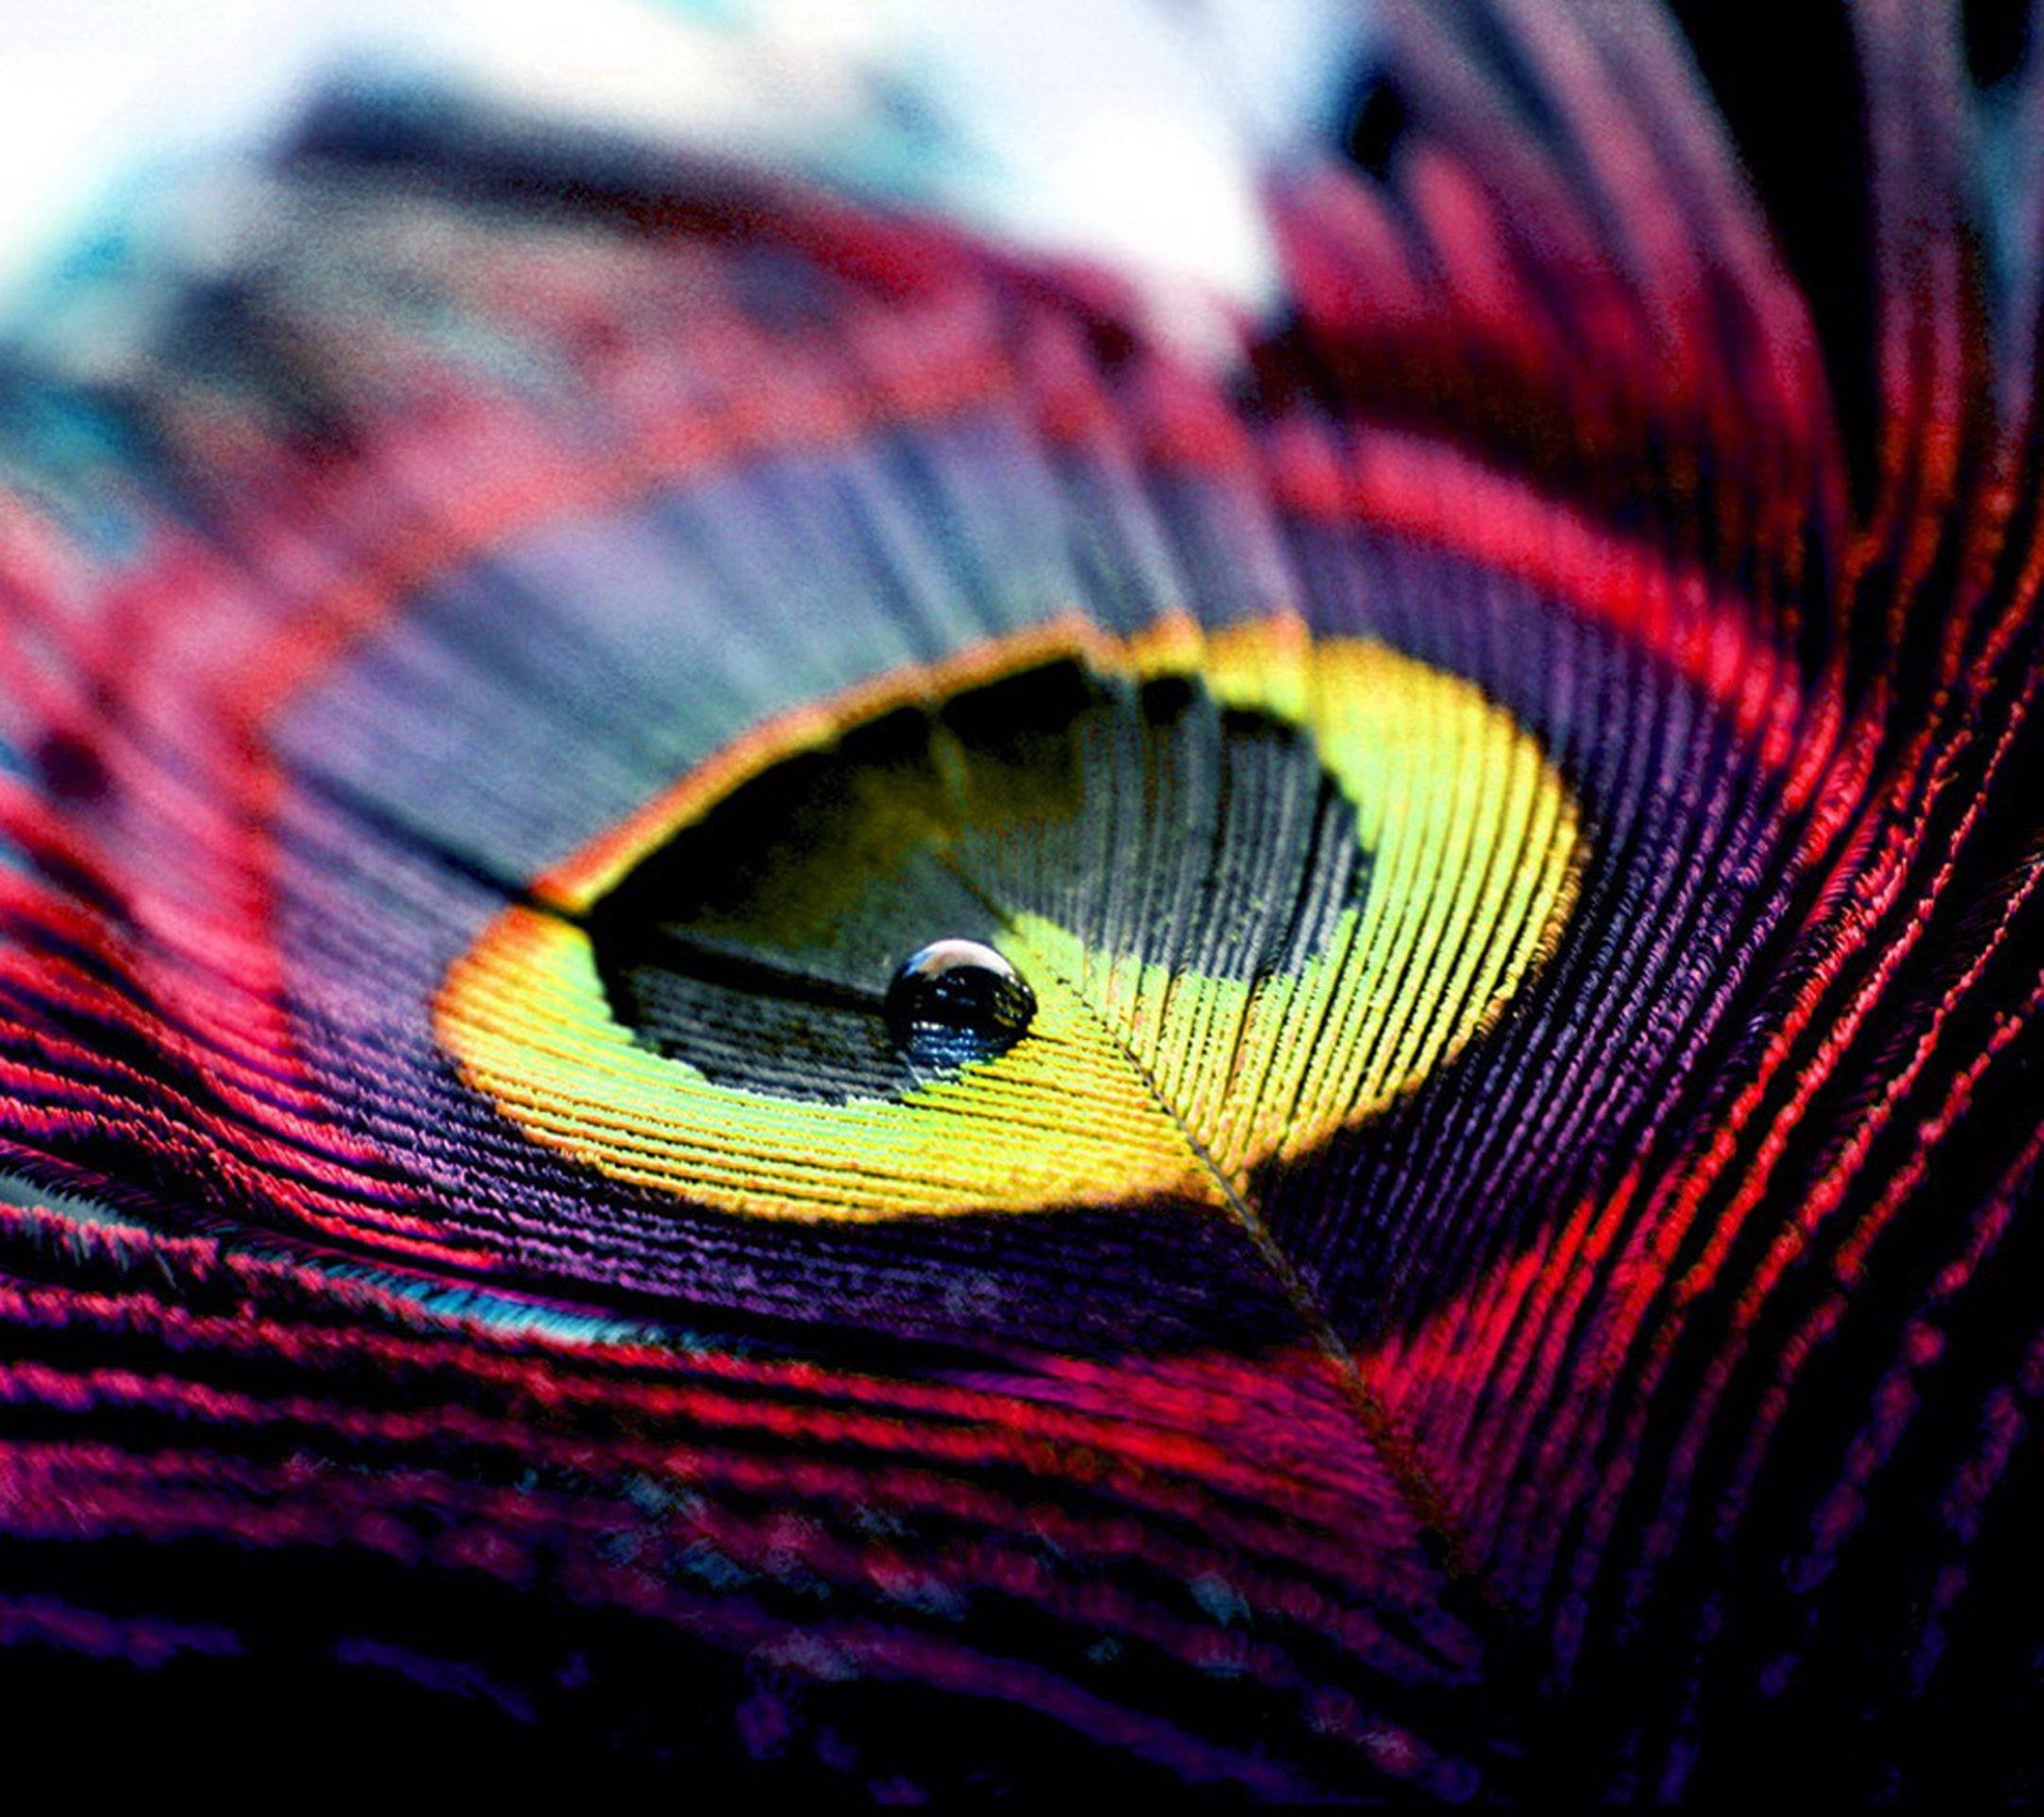 Peacock Feather Wallpapers | Top 92 Peacock Feather Wallpapers